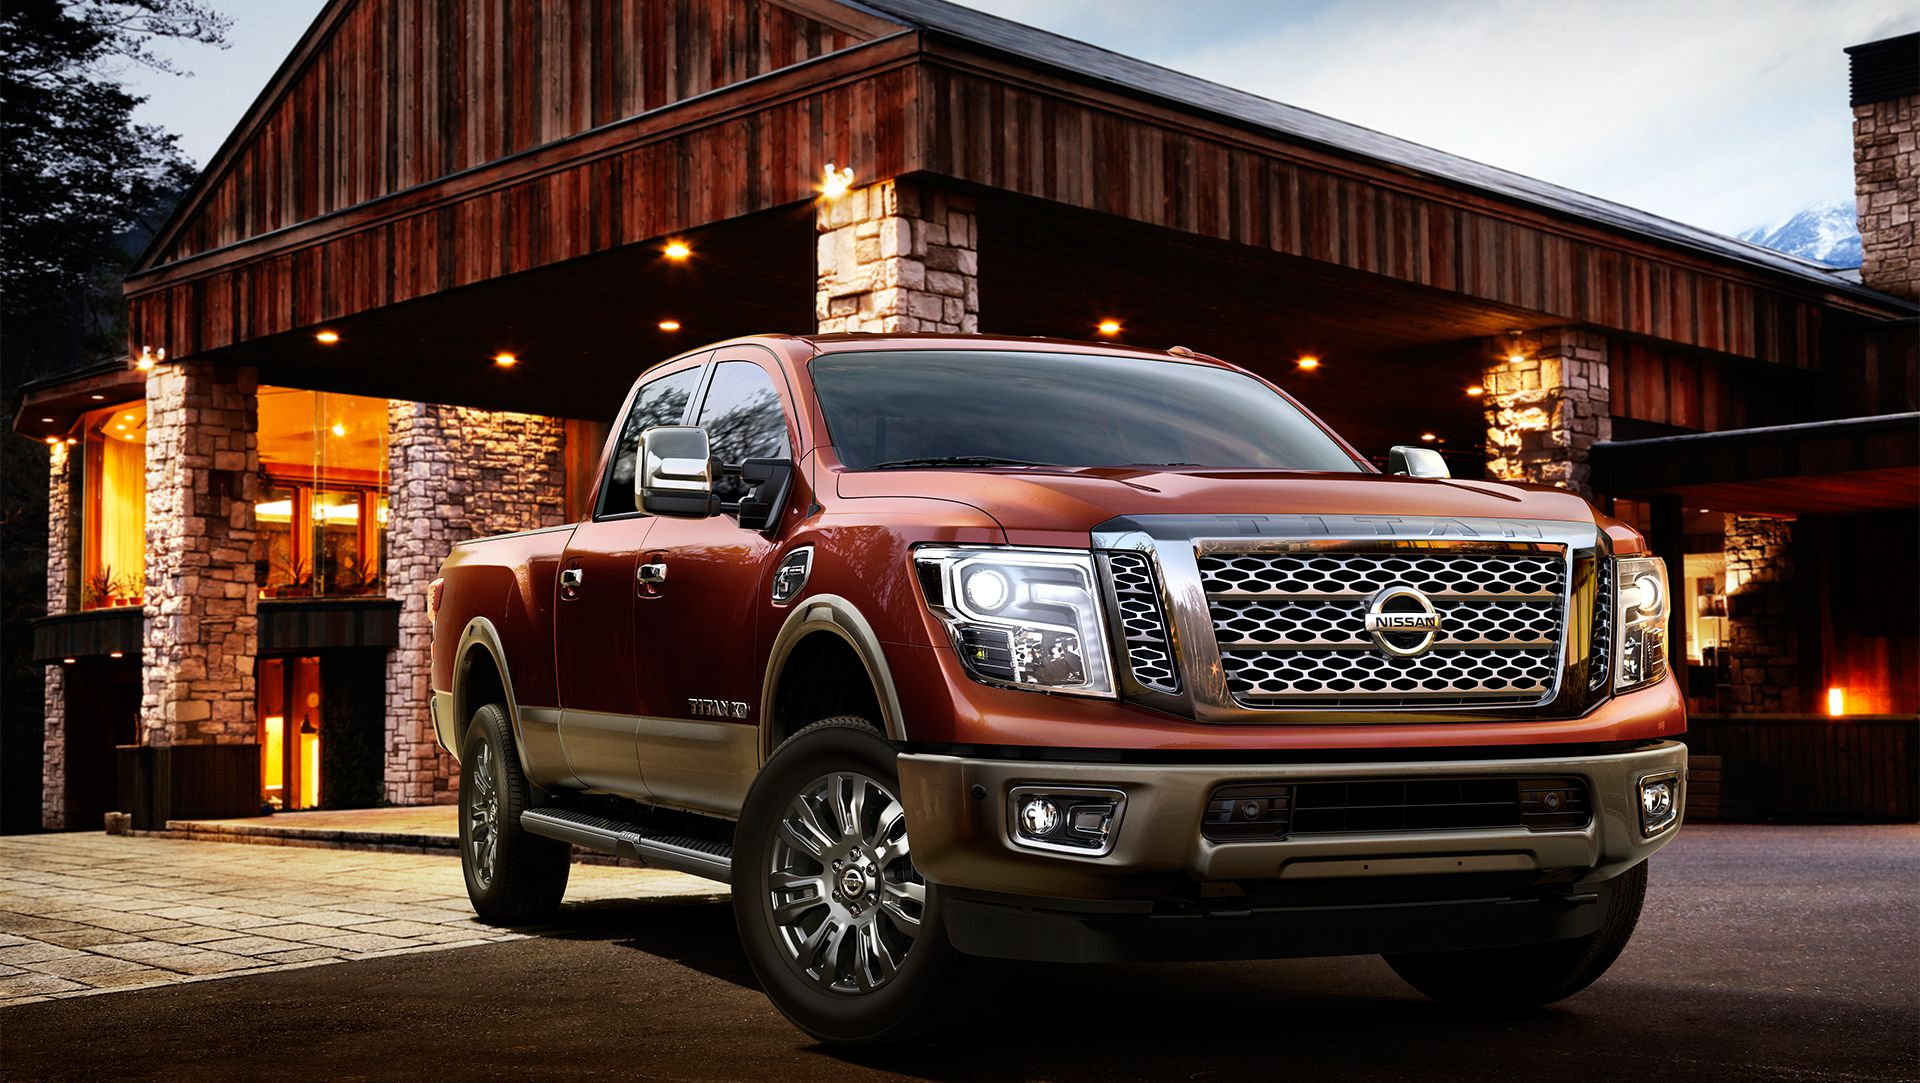 Nissan Titan Xd Named Autoguide Com 2016 Truck Of The Year Auto Moto Japan Bullet